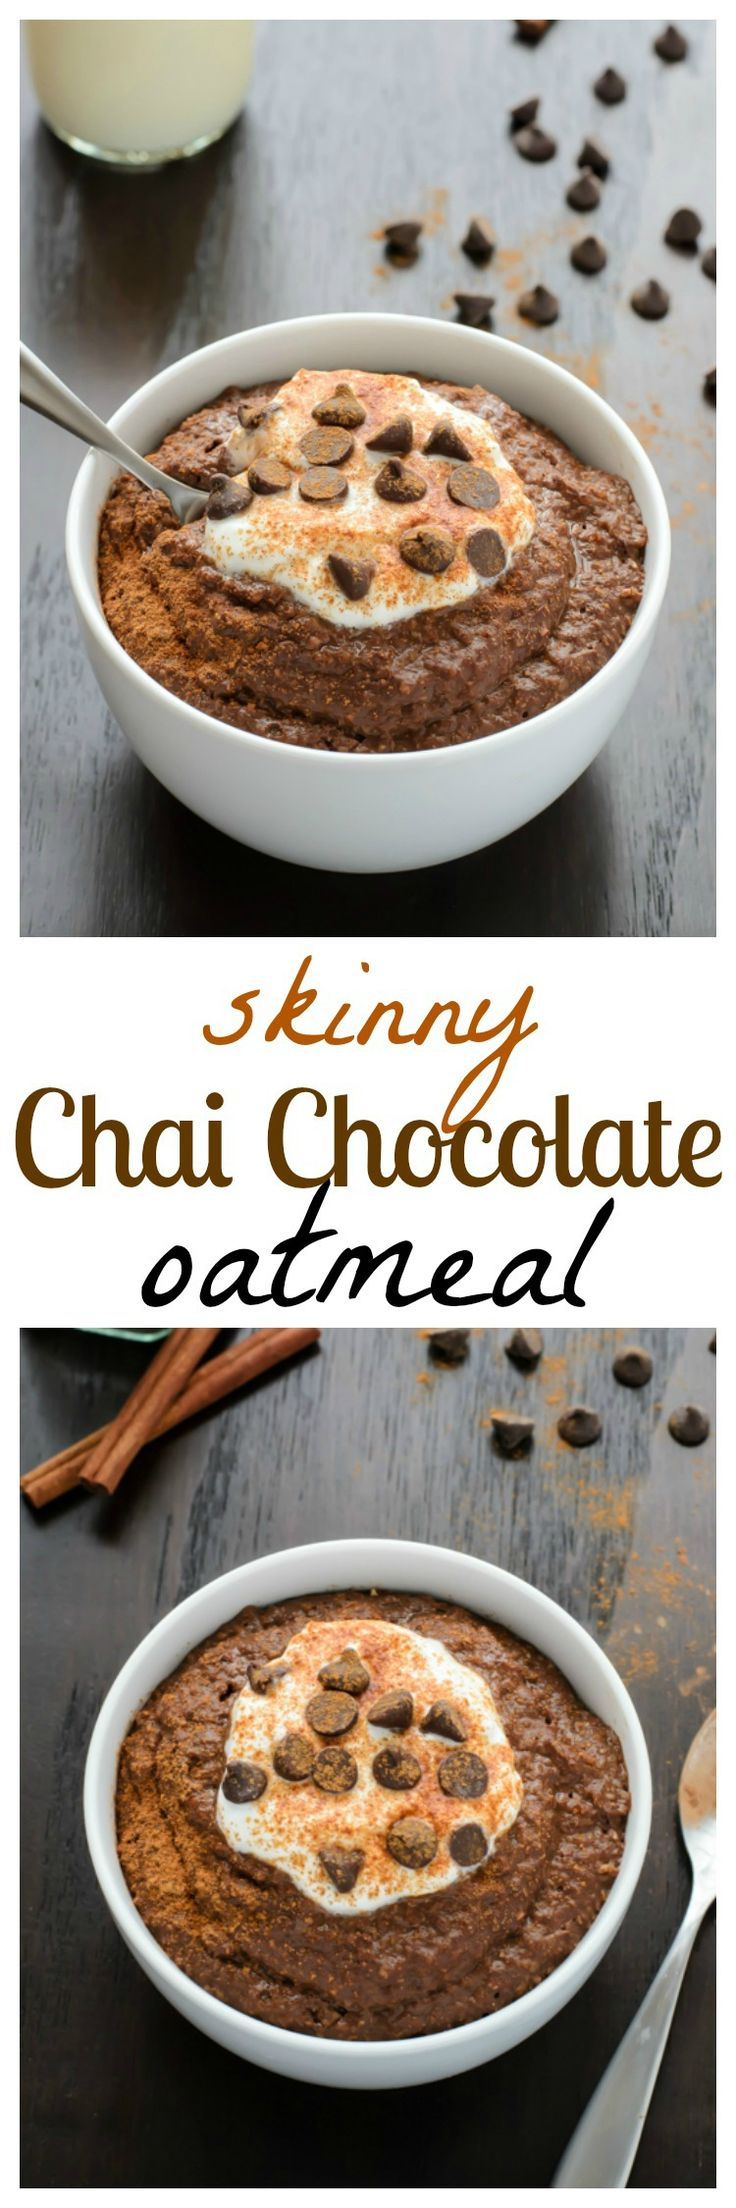 Chai Spice Chocolate Oatmeal. Decadent AND healthy. The best of both worlds! {paleo, vegan}